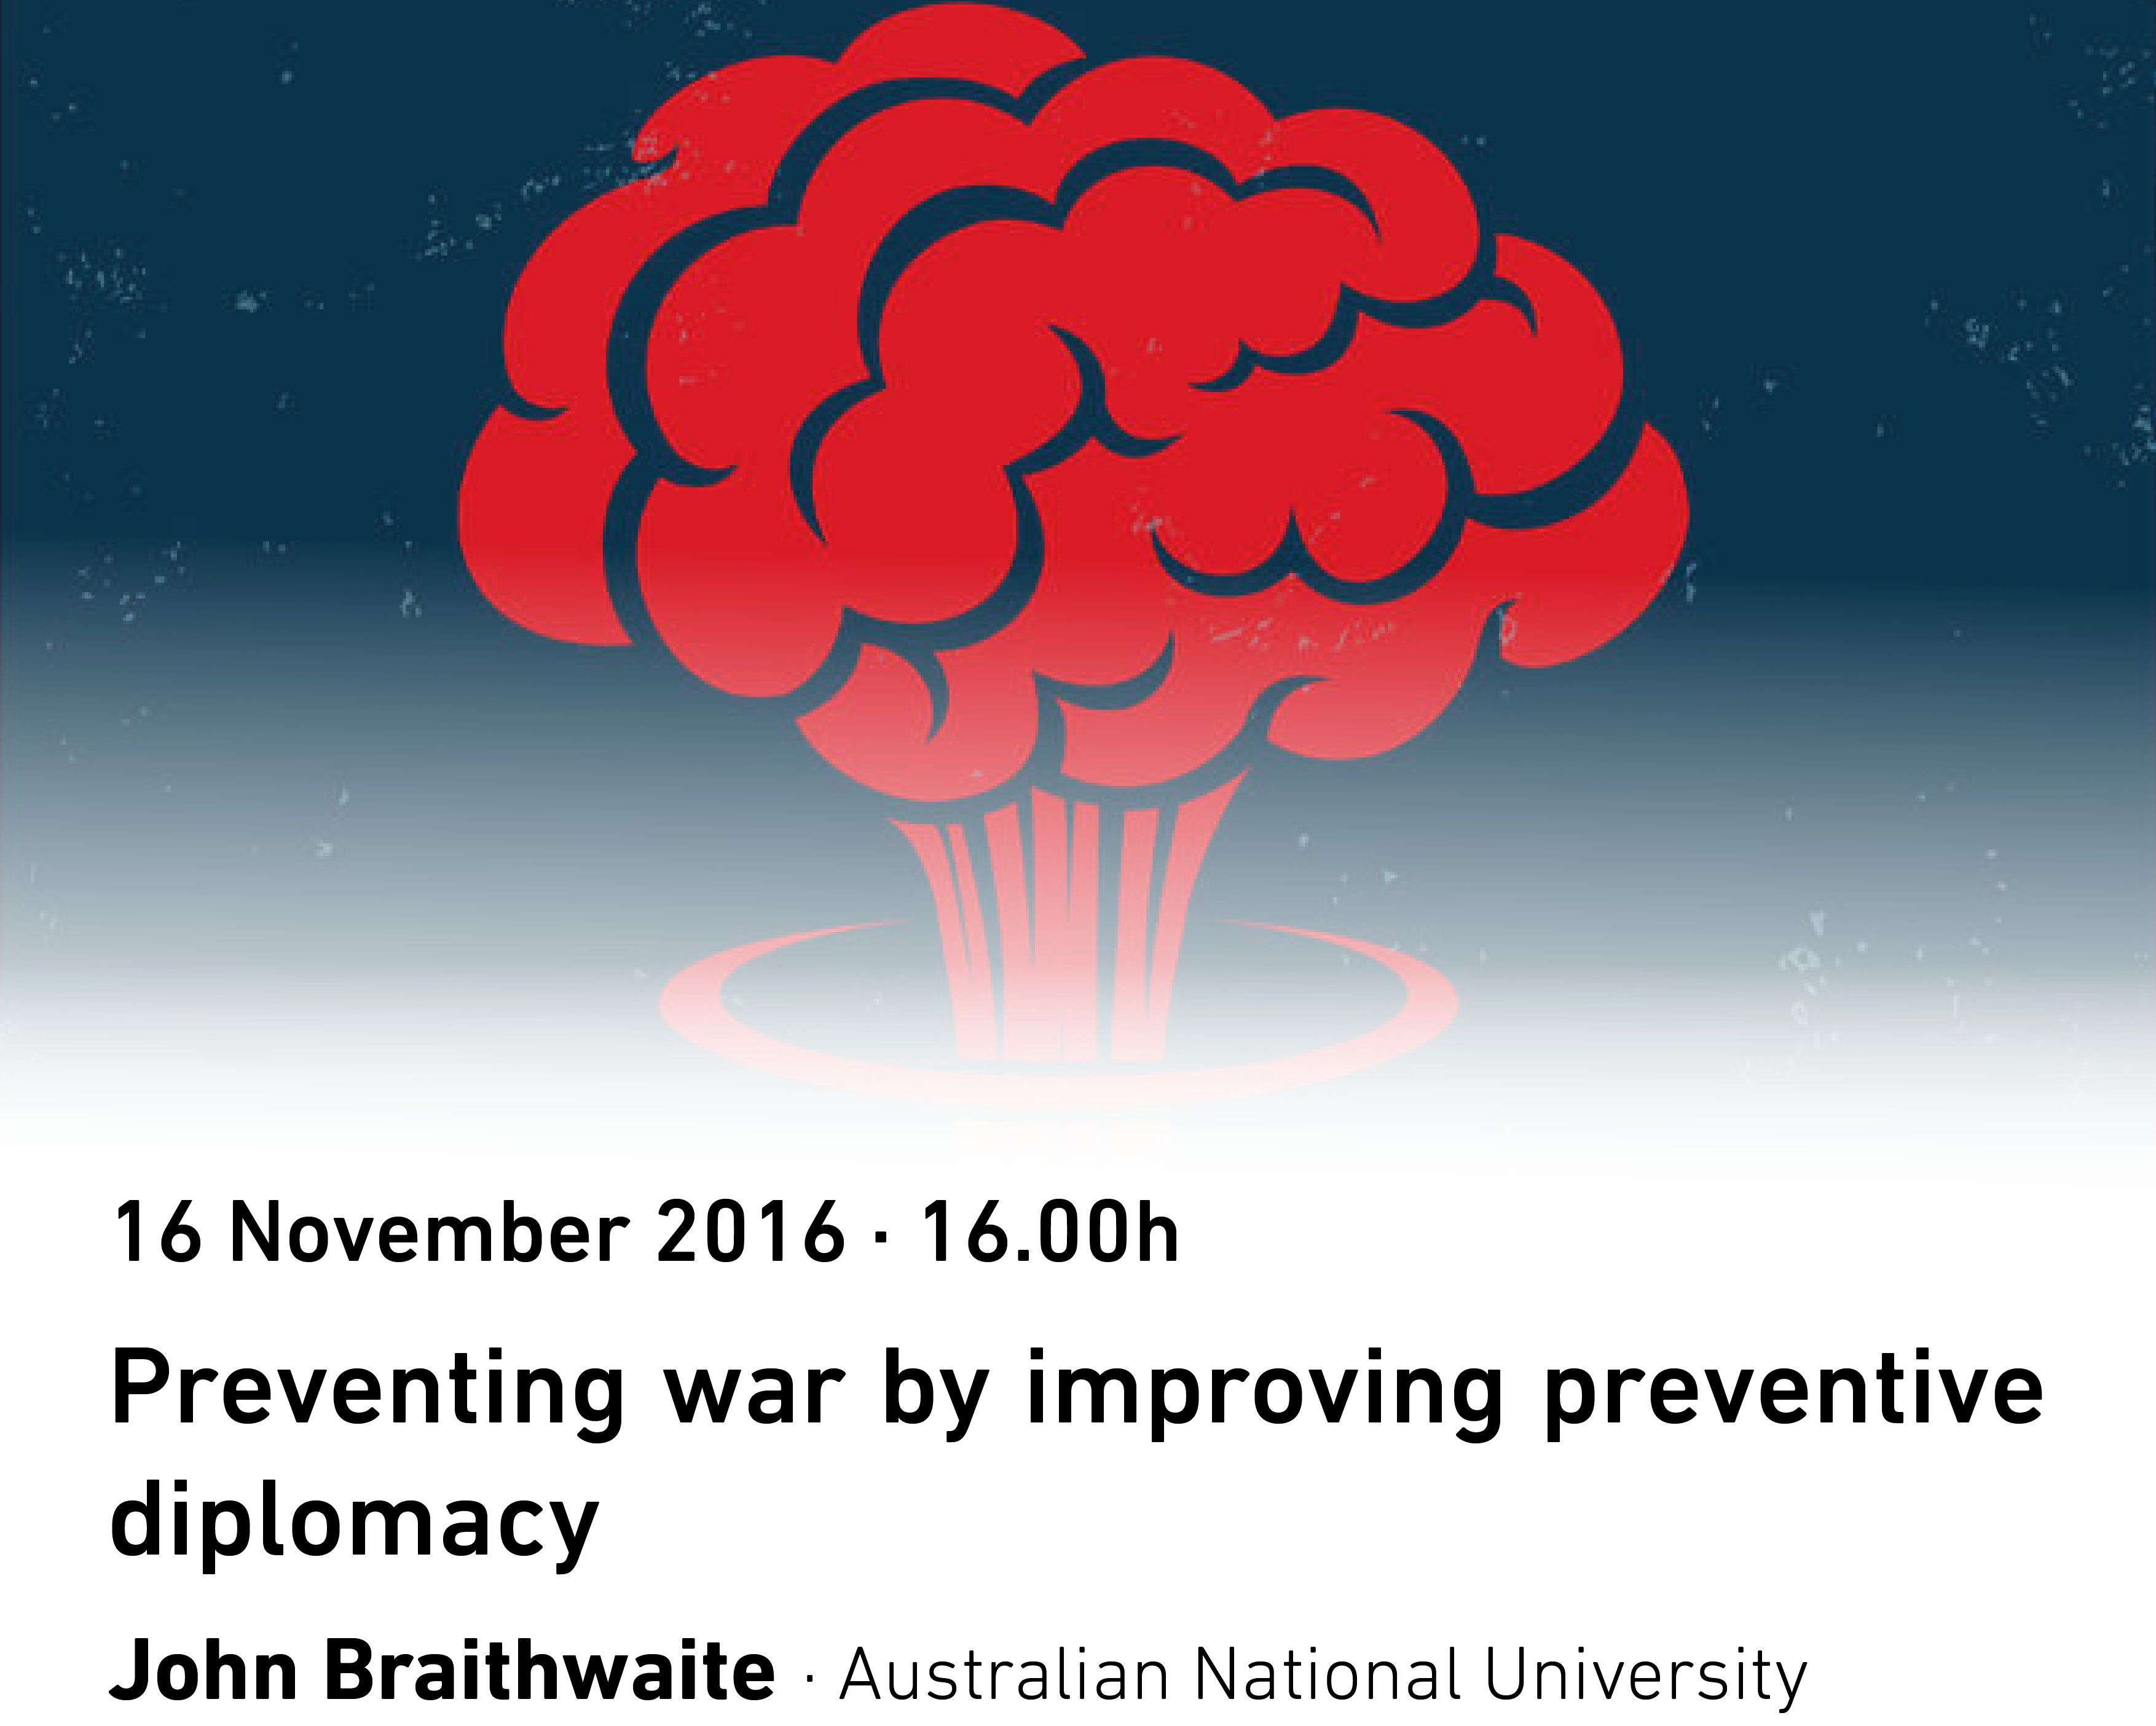 Preventing war by improving preventive diplomacy